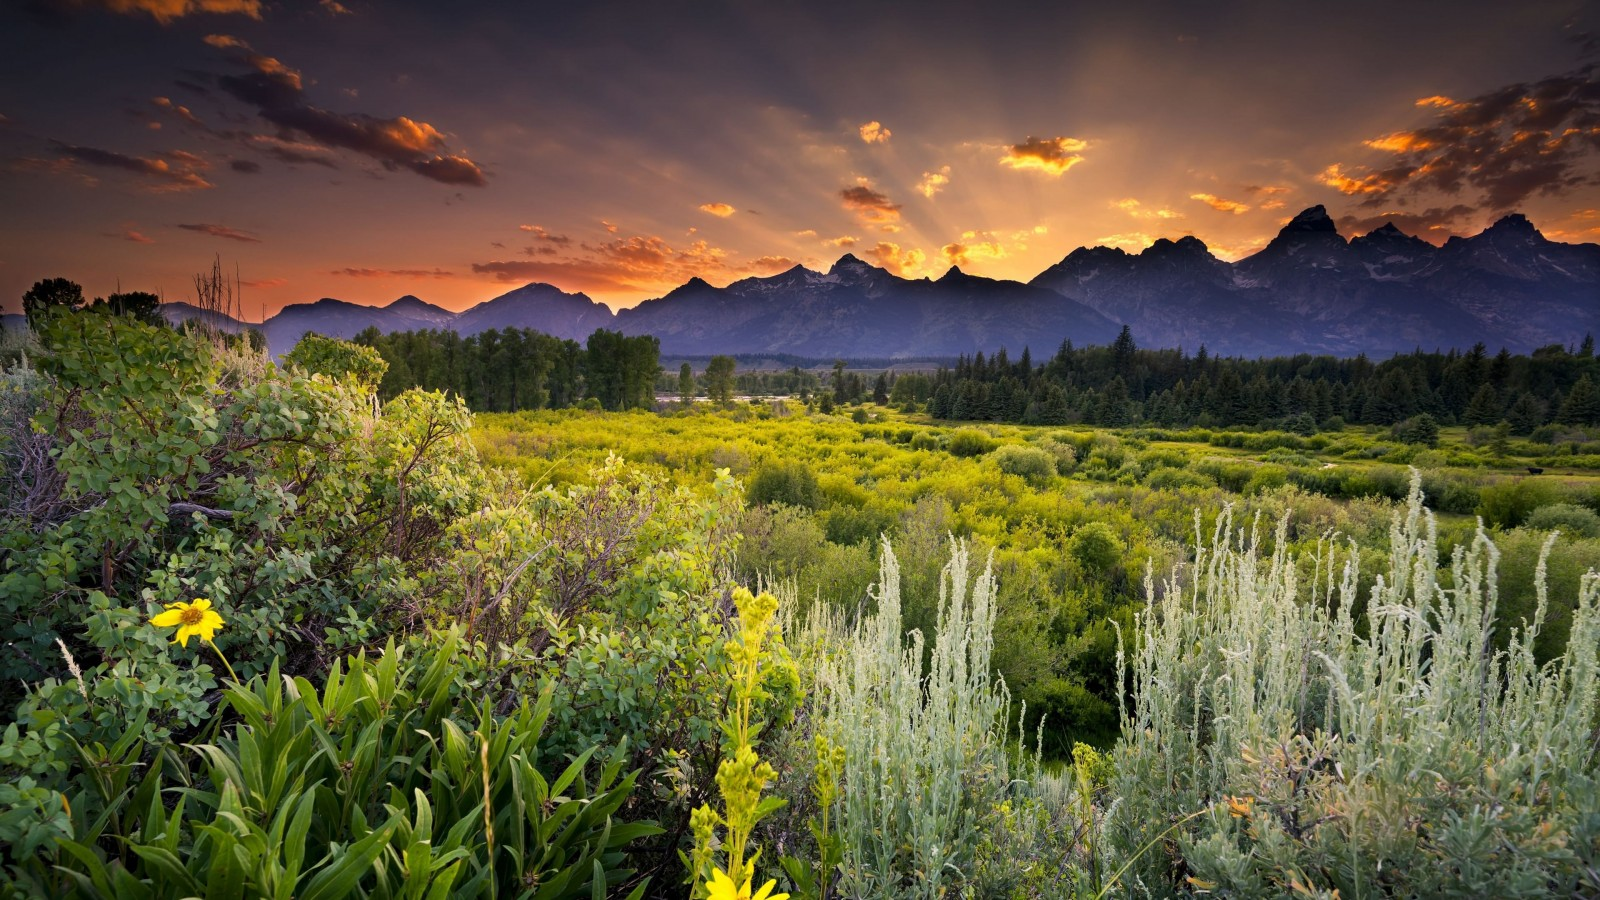 Sunset in Grand Teton National Park Wallpaper for Desktop 1600x900